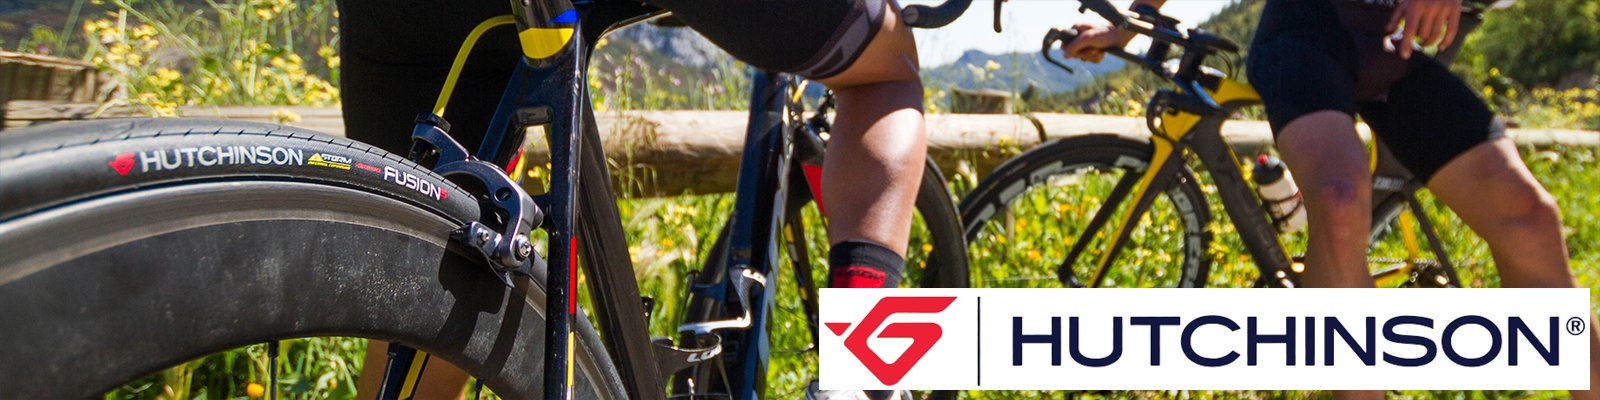 Velox | Products to Make Your Ride Better